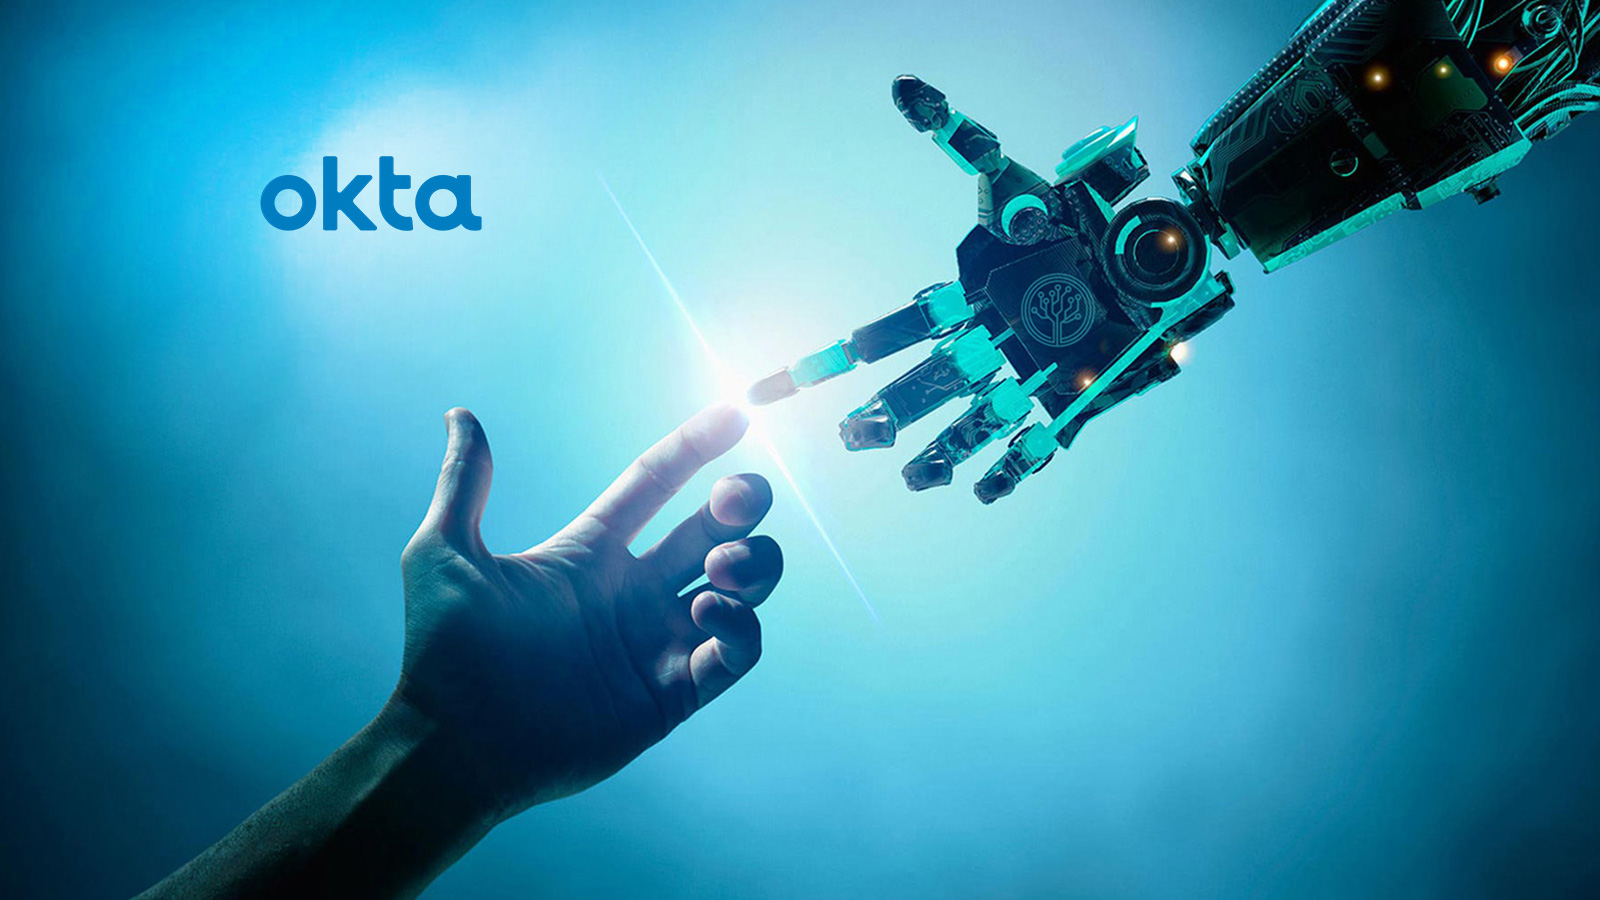 Okta to Acquire Azuqua to Connect Business Applications in